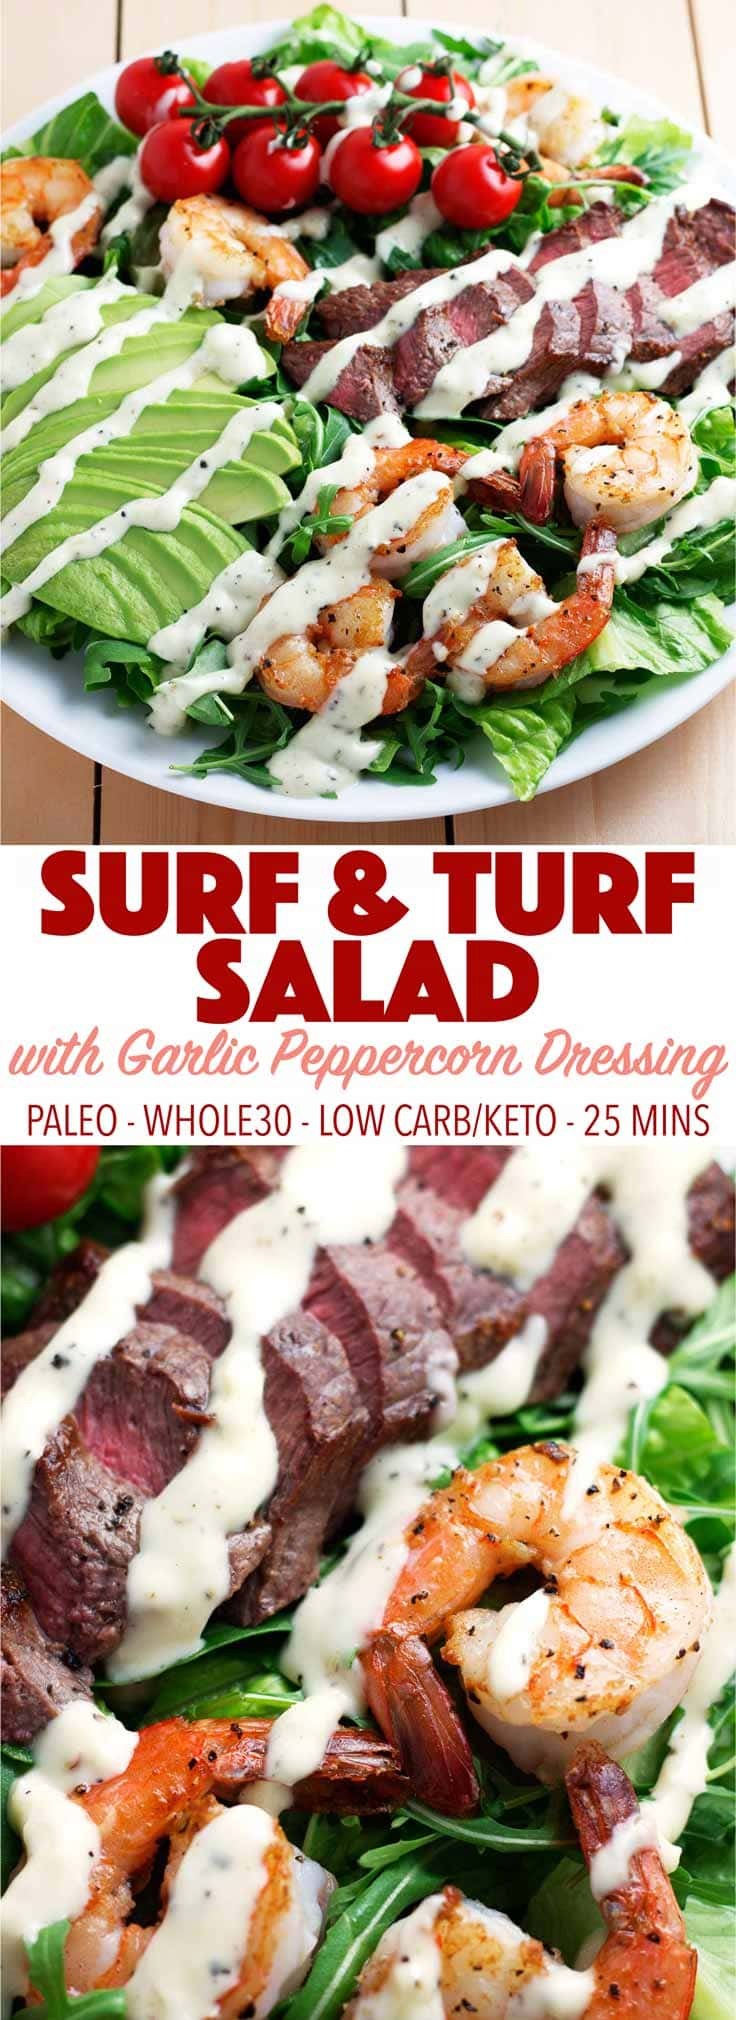 A healthy, fresh dinner in just 25 mins. This delicious salad is full of flavor! It's paleo, dairy free, whole30, keto, and low carb!